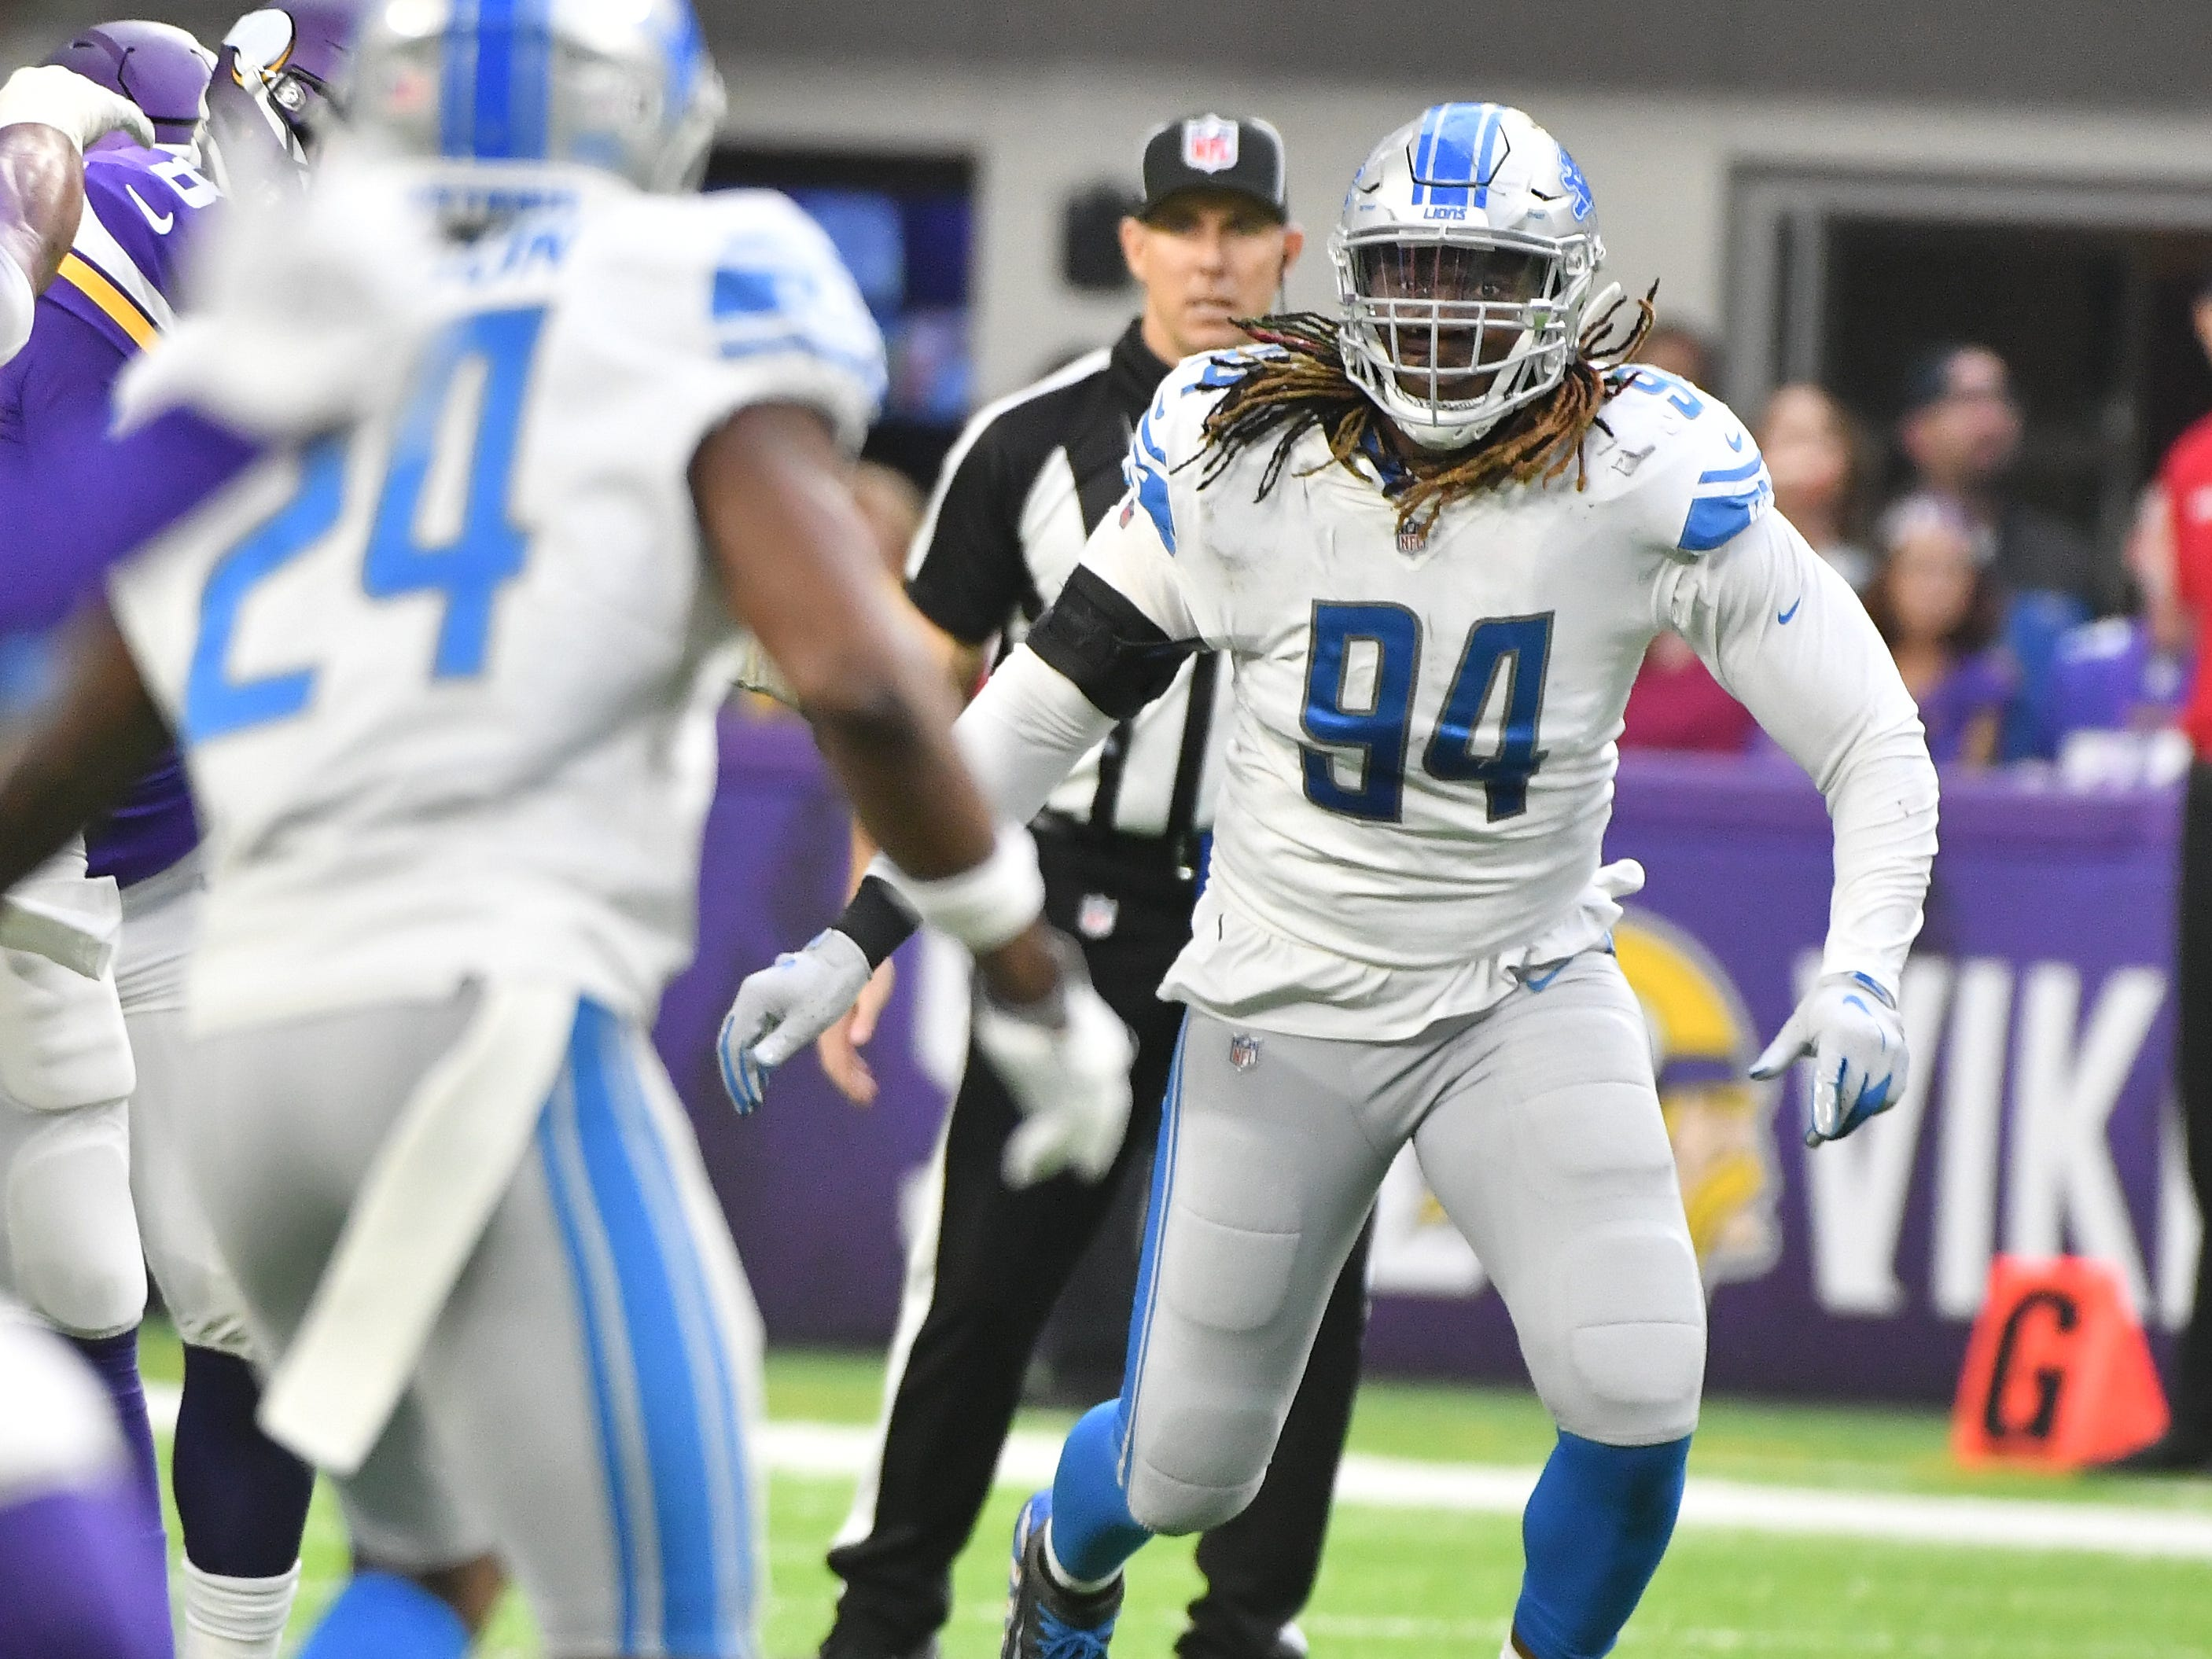 Lions' Ezekiel Ansah in on a play in the third quarter.